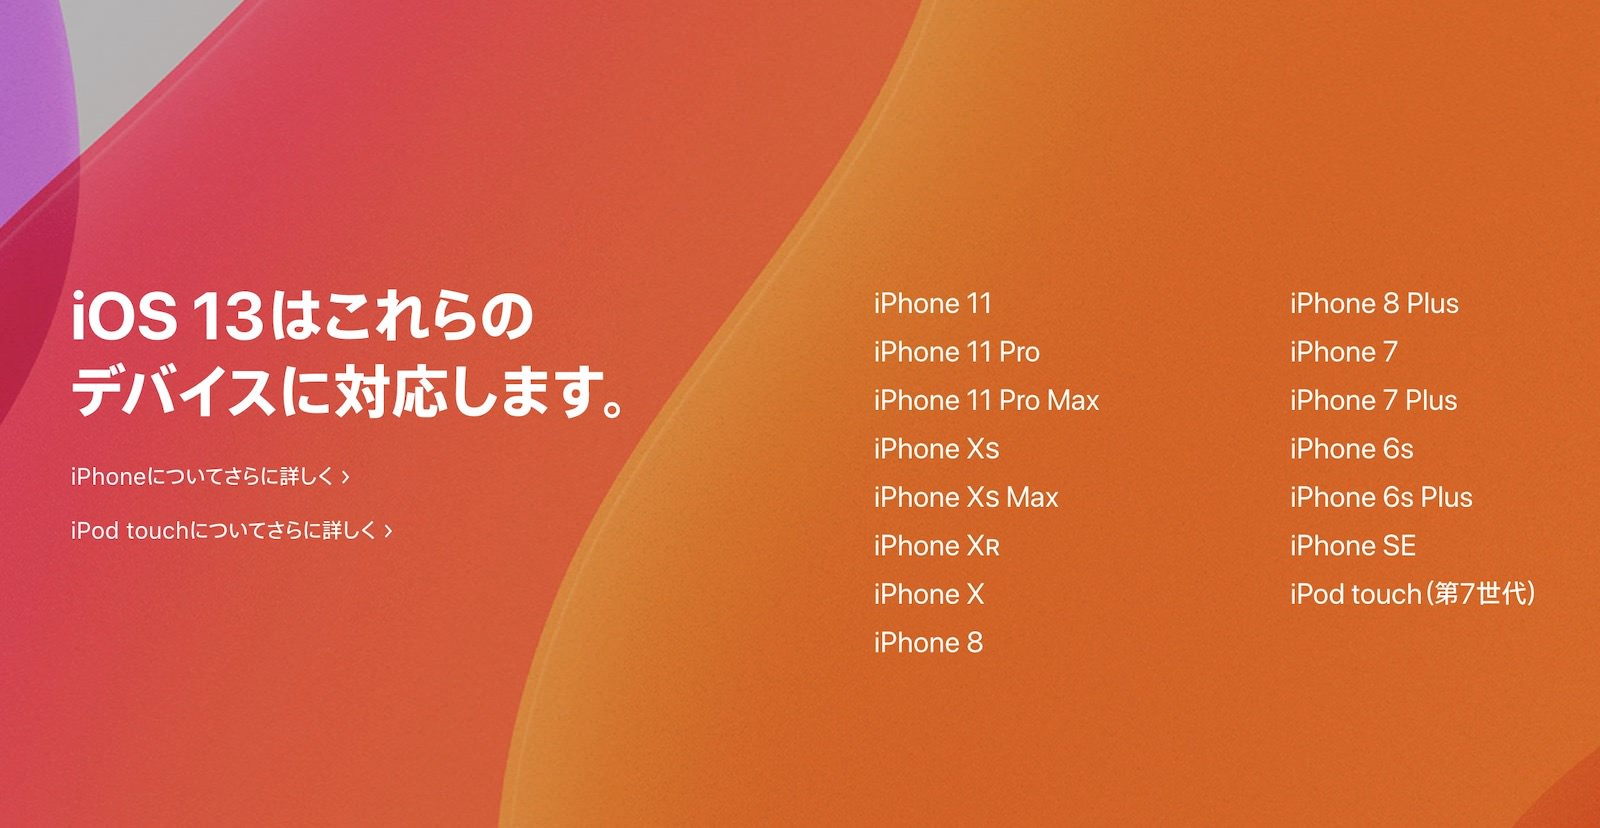 ios-13-supprted-devices.jpg